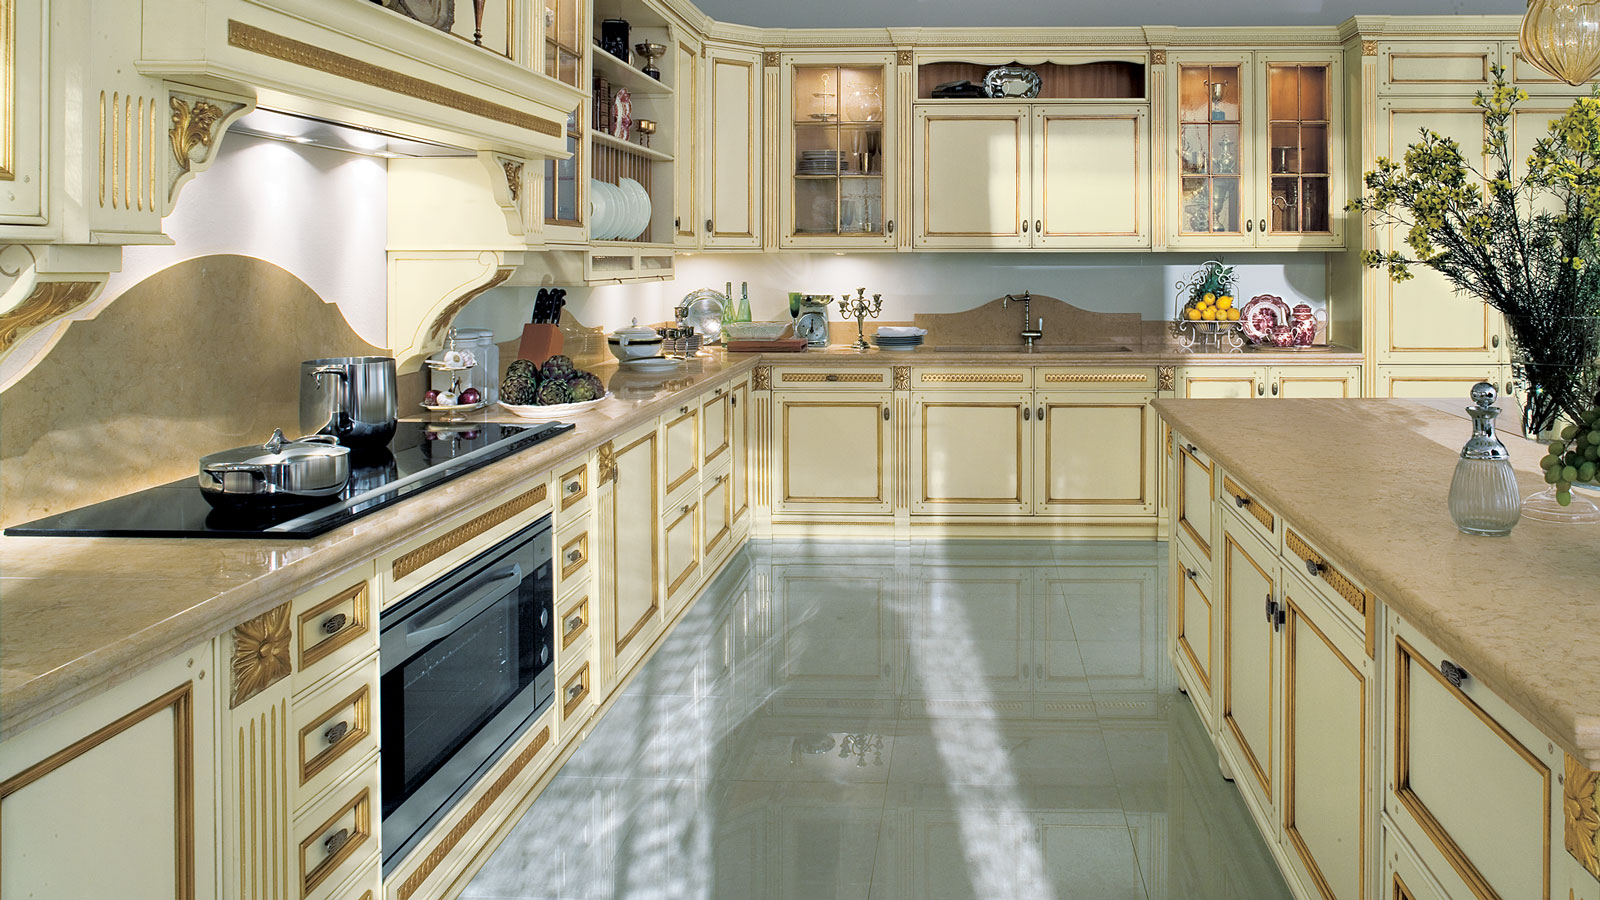 Amazing Antique Kitchen Cabinet Design With Smooth Cream Color And Flashing  Brown Line Accent With Wooden